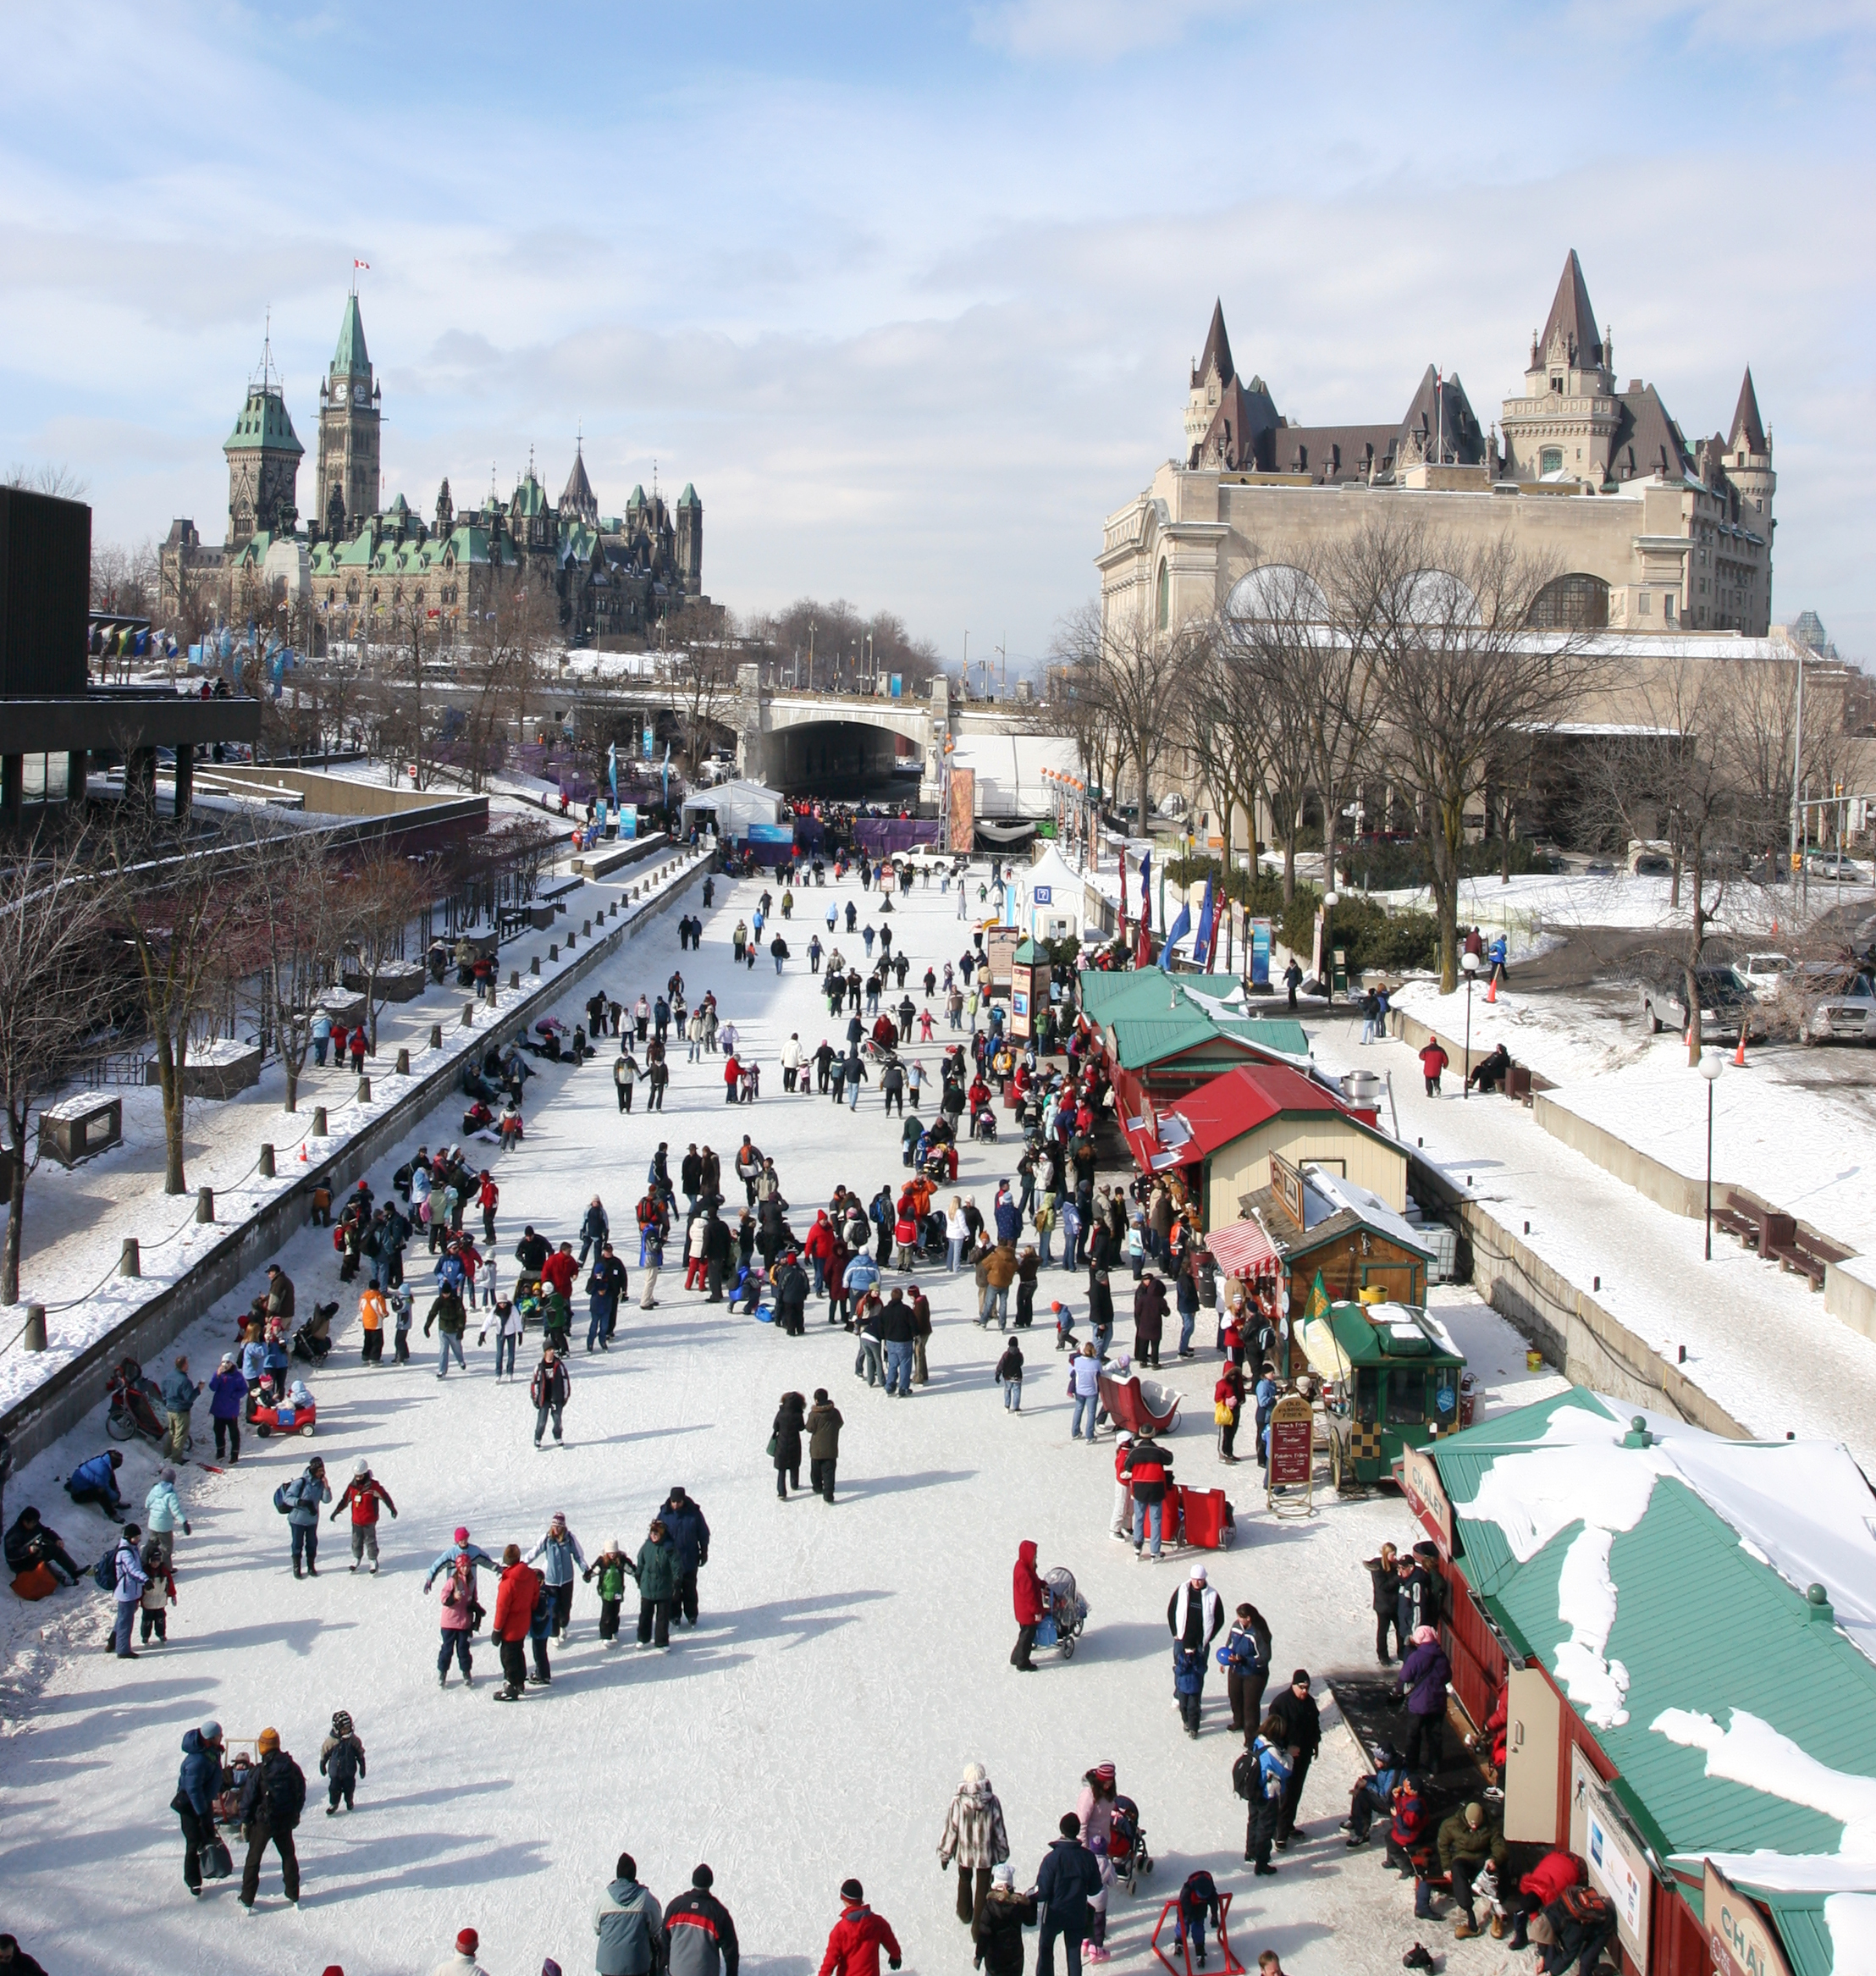 ottawa dossier tout savoir sur le pvt ottawa. Black Bedroom Furniture Sets. Home Design Ideas